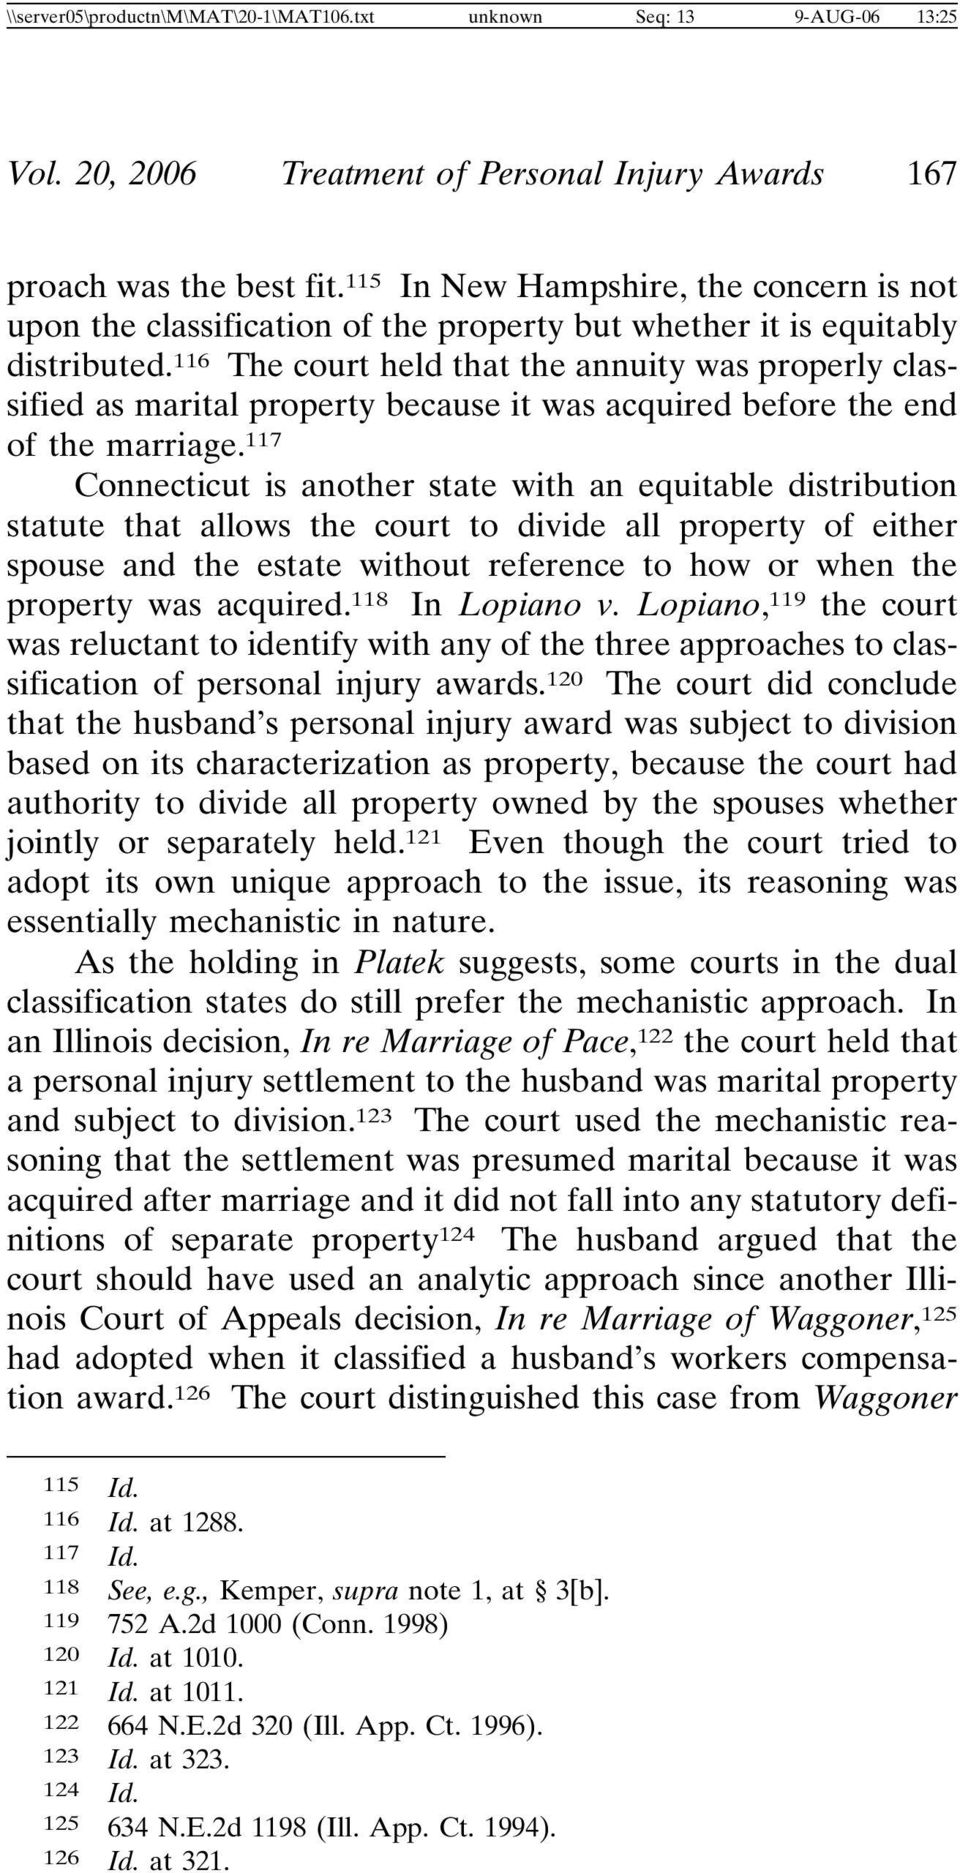 116 The court held that the annuity was properly classified as marital property because it was acquired before the end of the marriage.